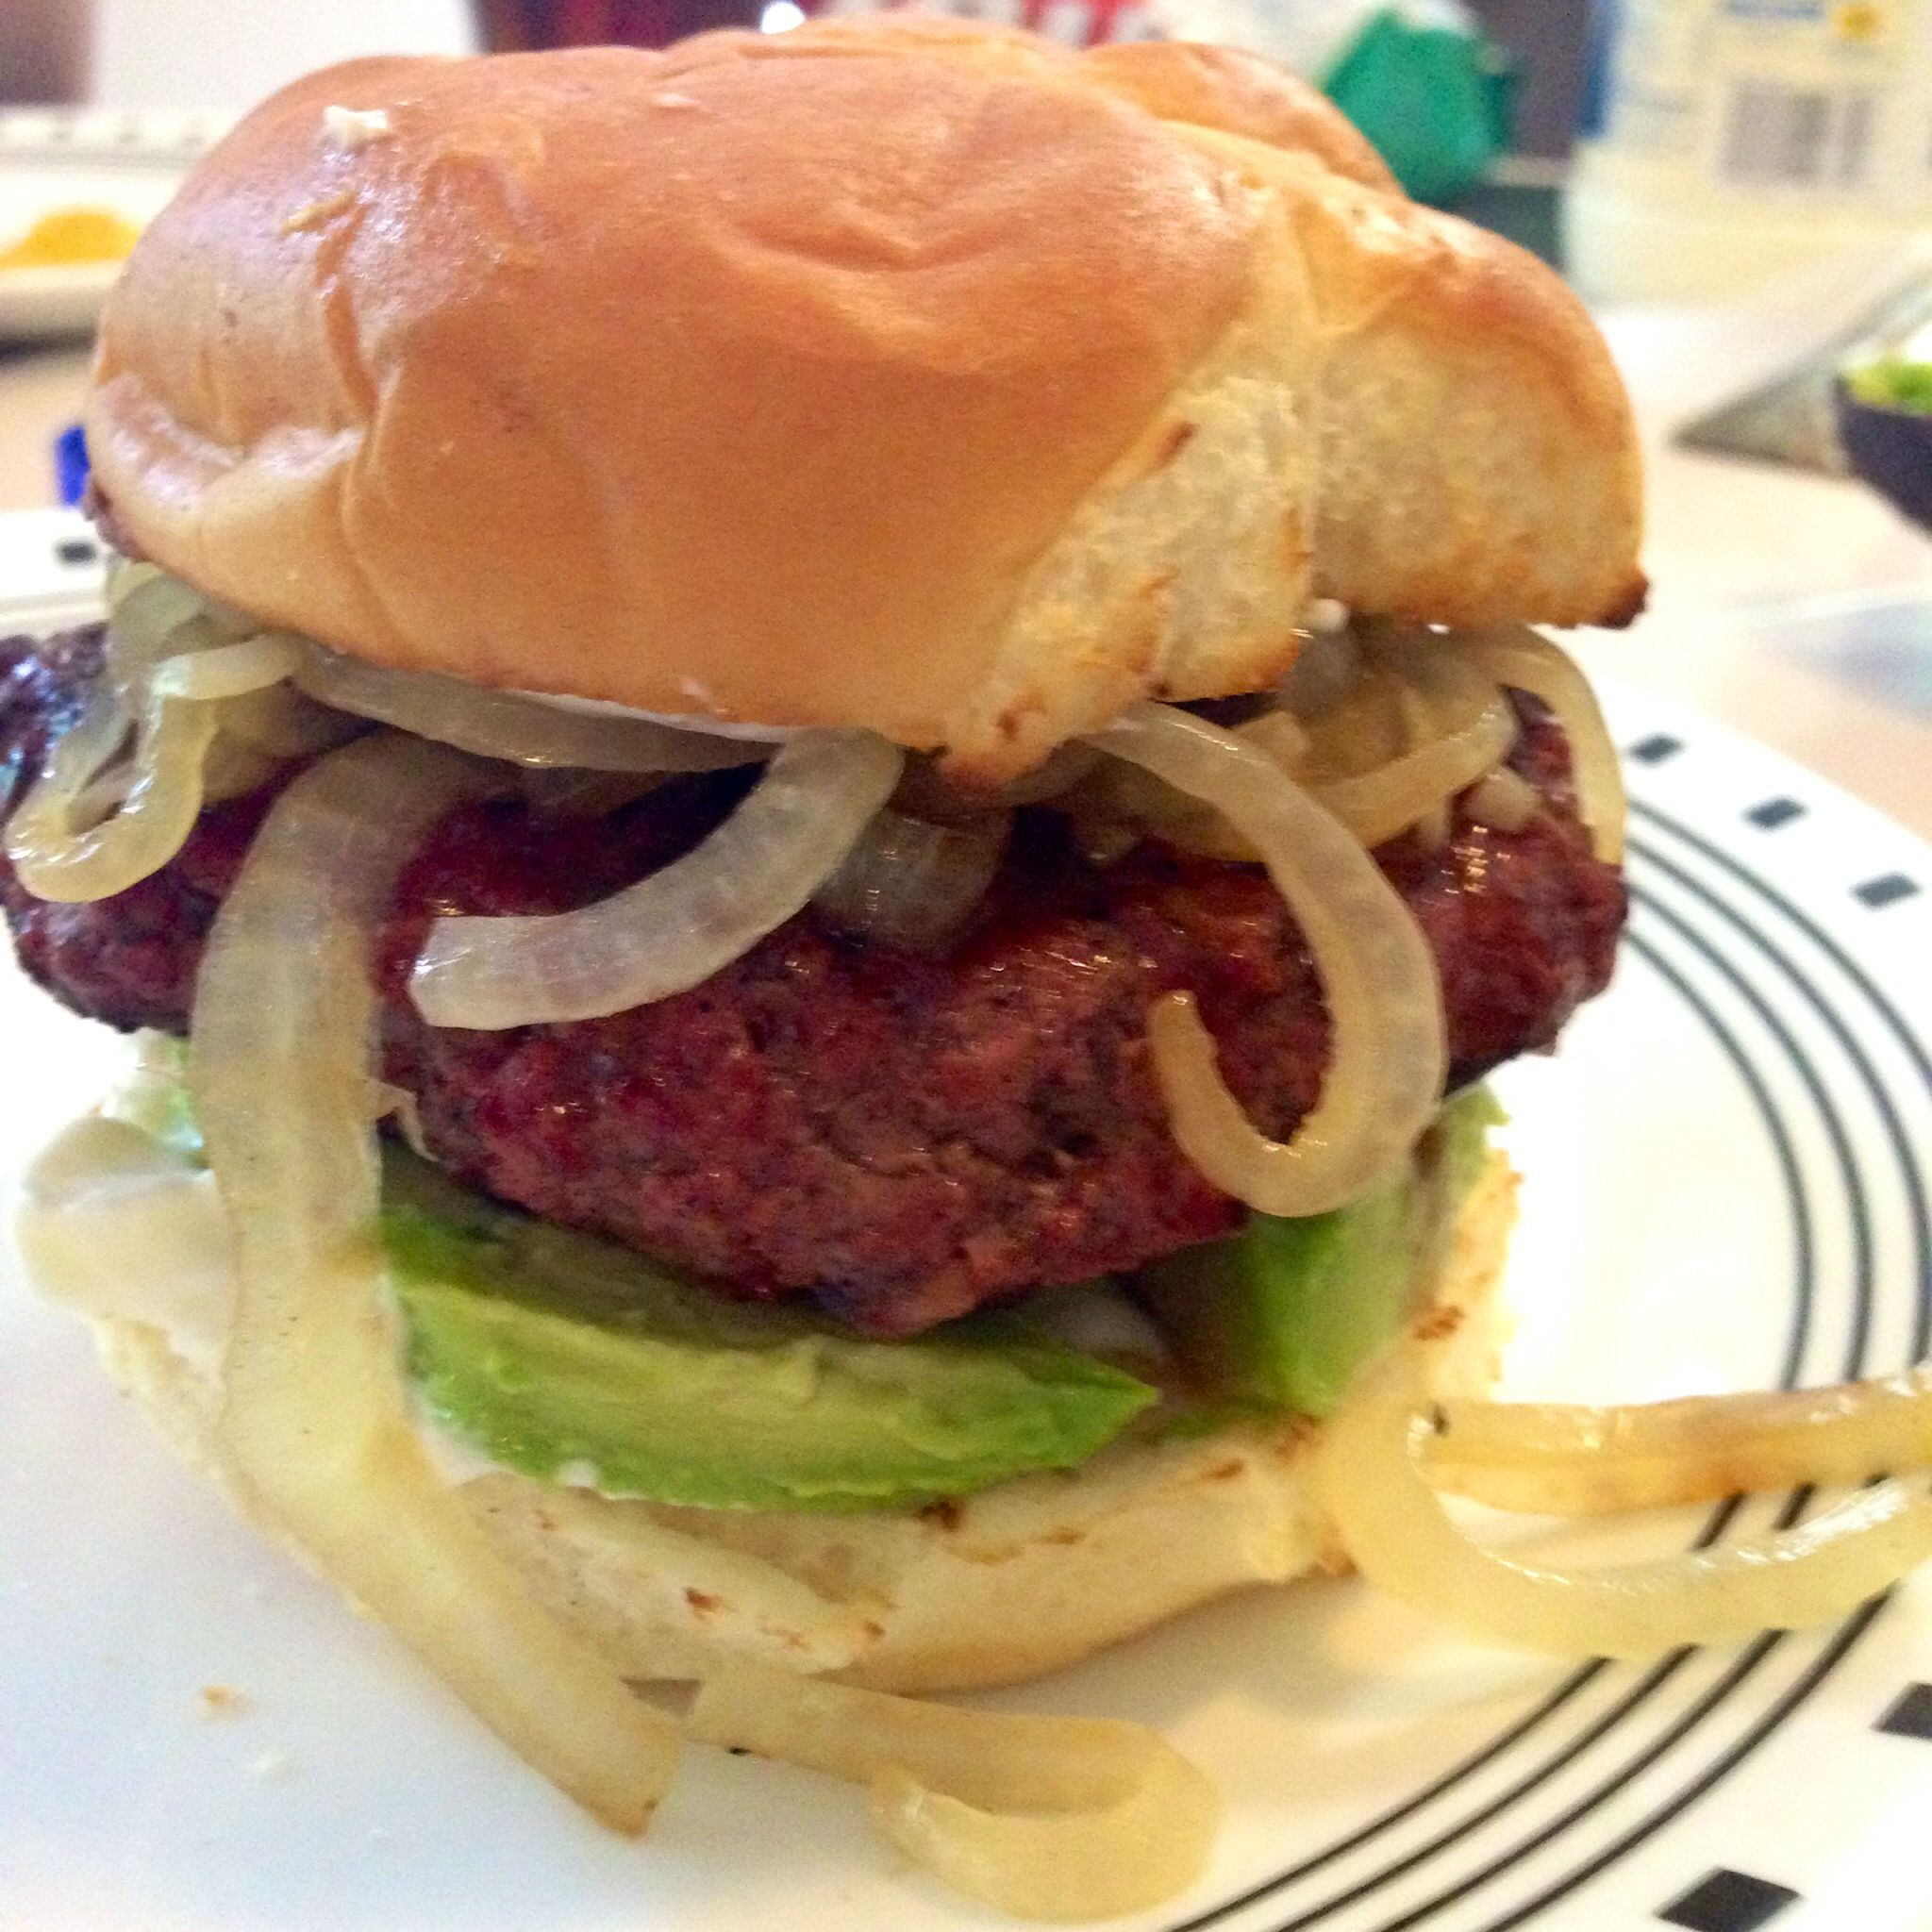 BBQ burger with grilled onions and avocado.